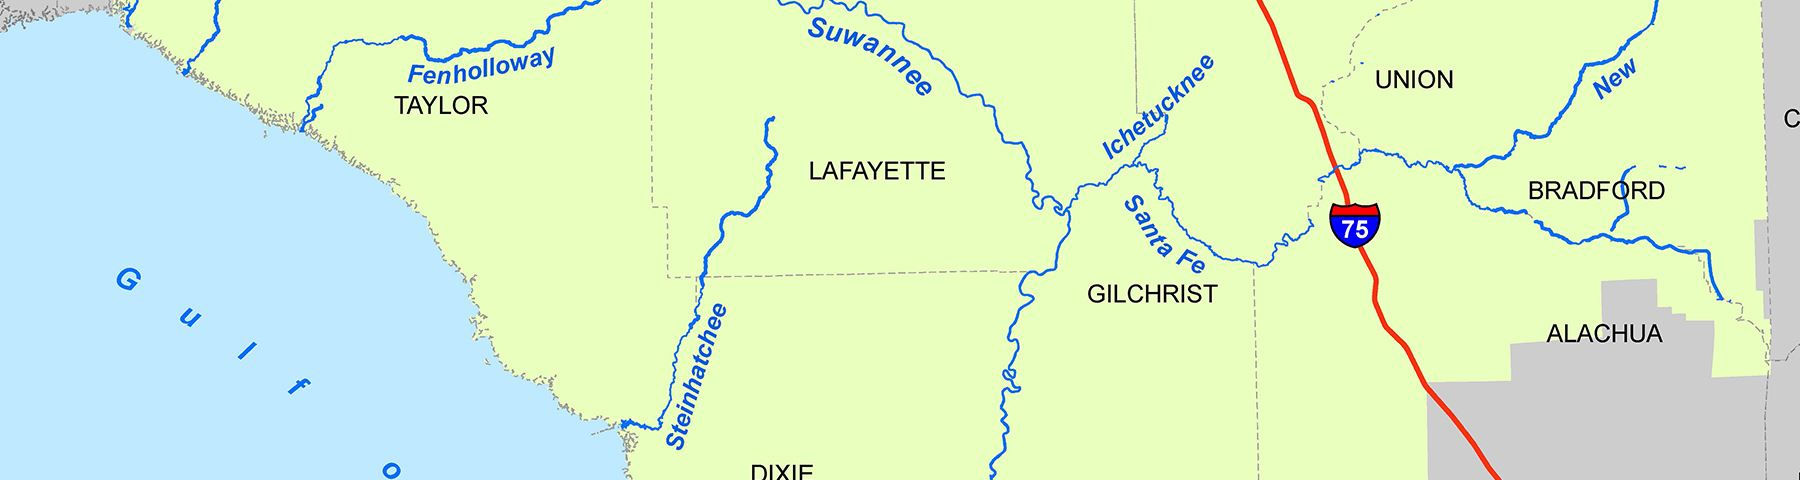 Groundwater Levels | Suwannee River Water Management District